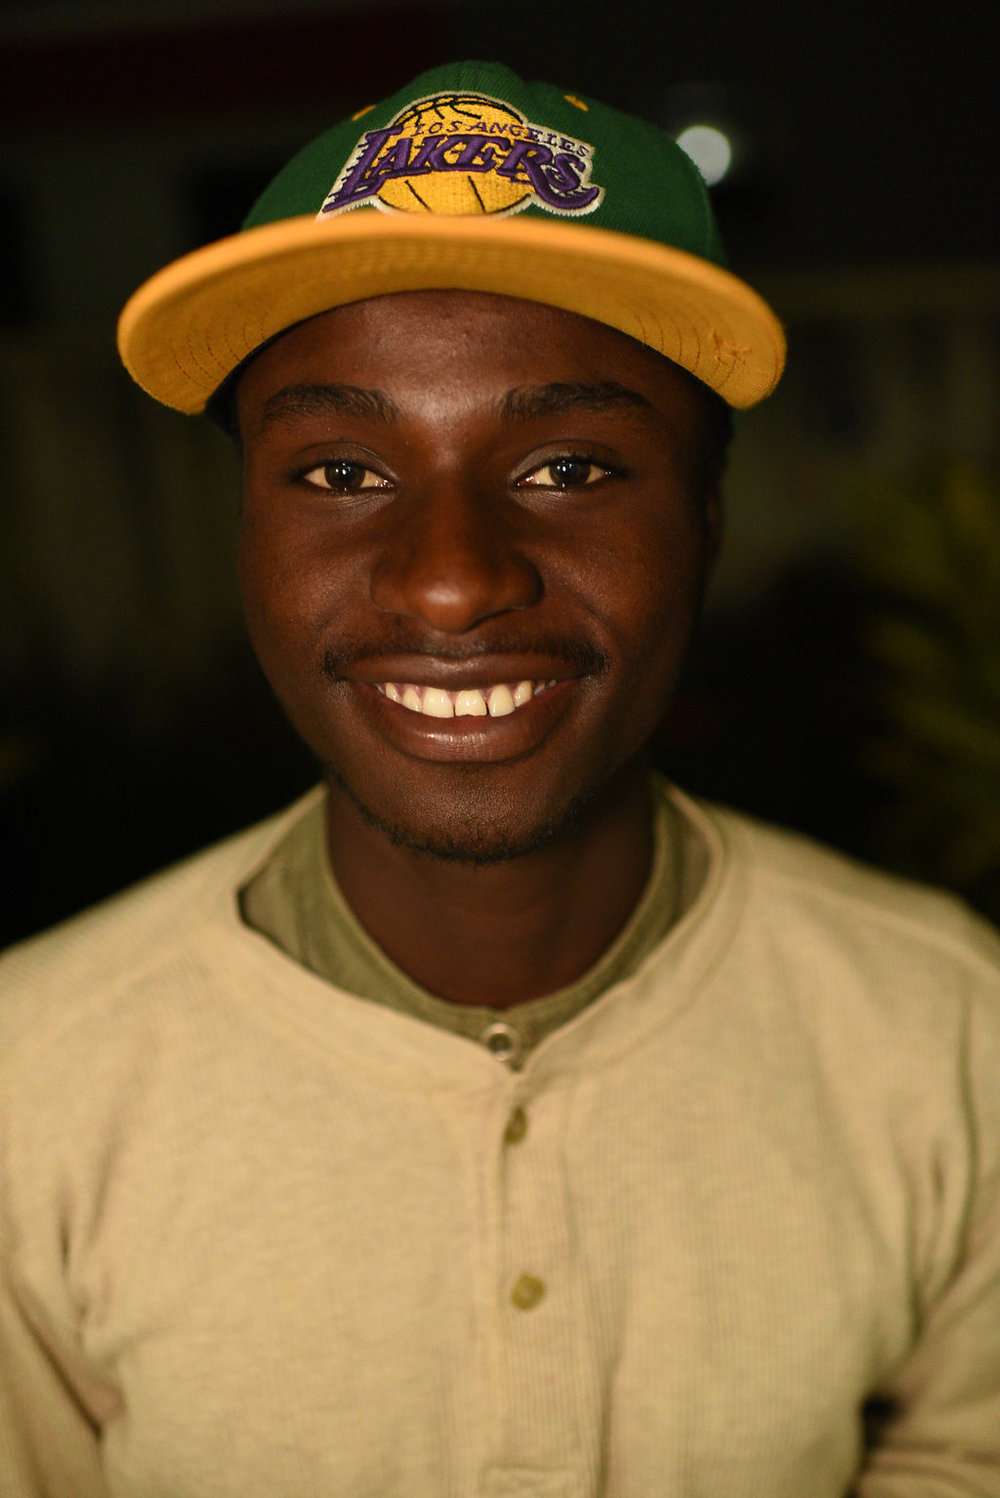 Ananias Cyuzuzo, our of our sponsored young men who got his hip replacement surgery at OrthoNebraska.